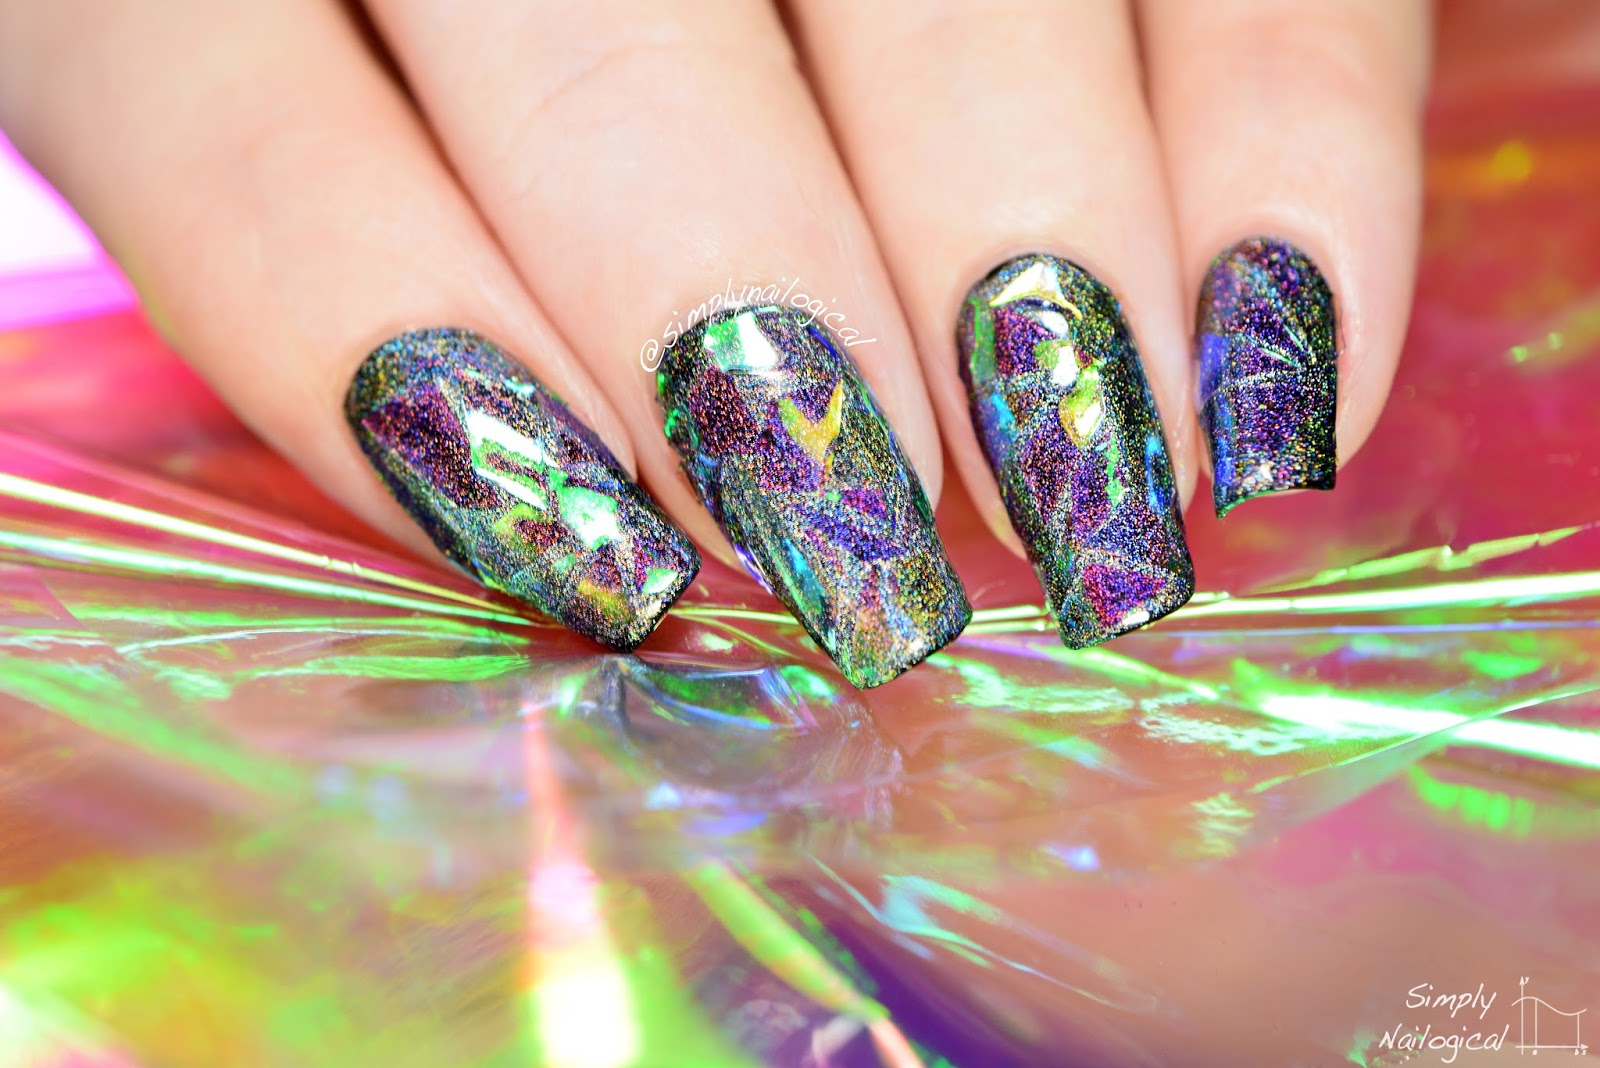 Use FUN Lacquer Holo Top Coat Under The Cellophane To Achieve This Effect